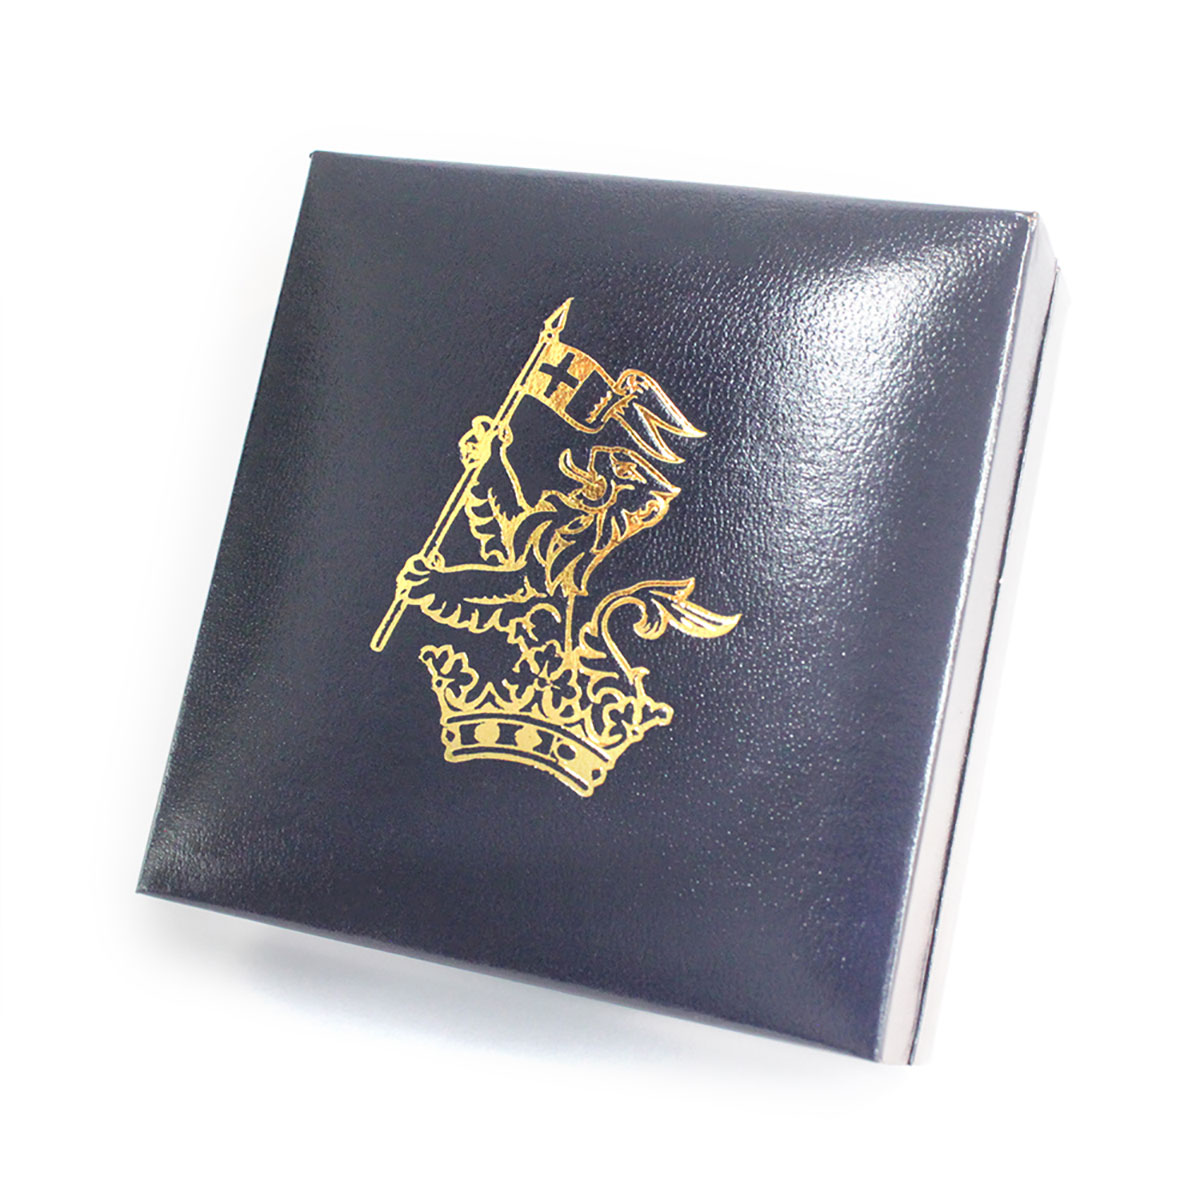 The Duke and Duchess of Wellington Presentation Cases with close up of royal crest